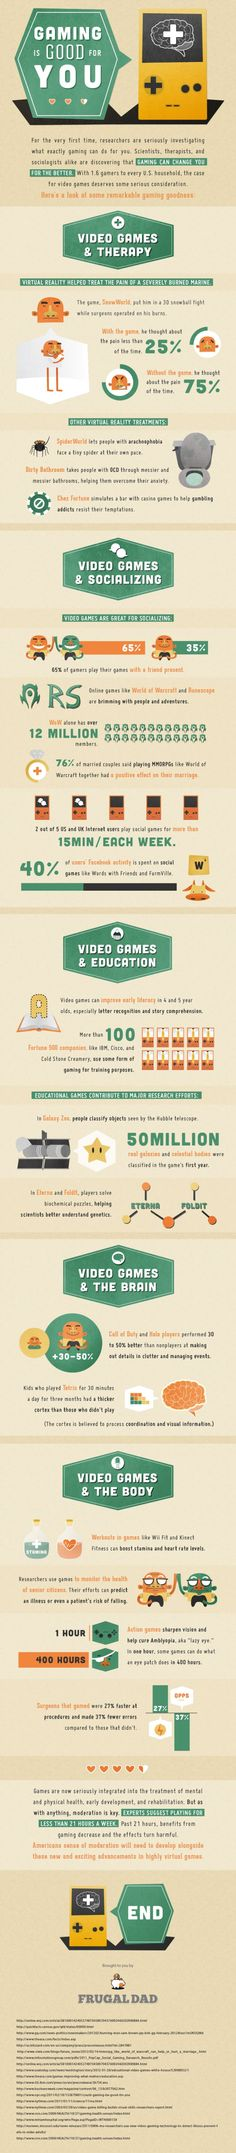 Video games are good for you. #gamification